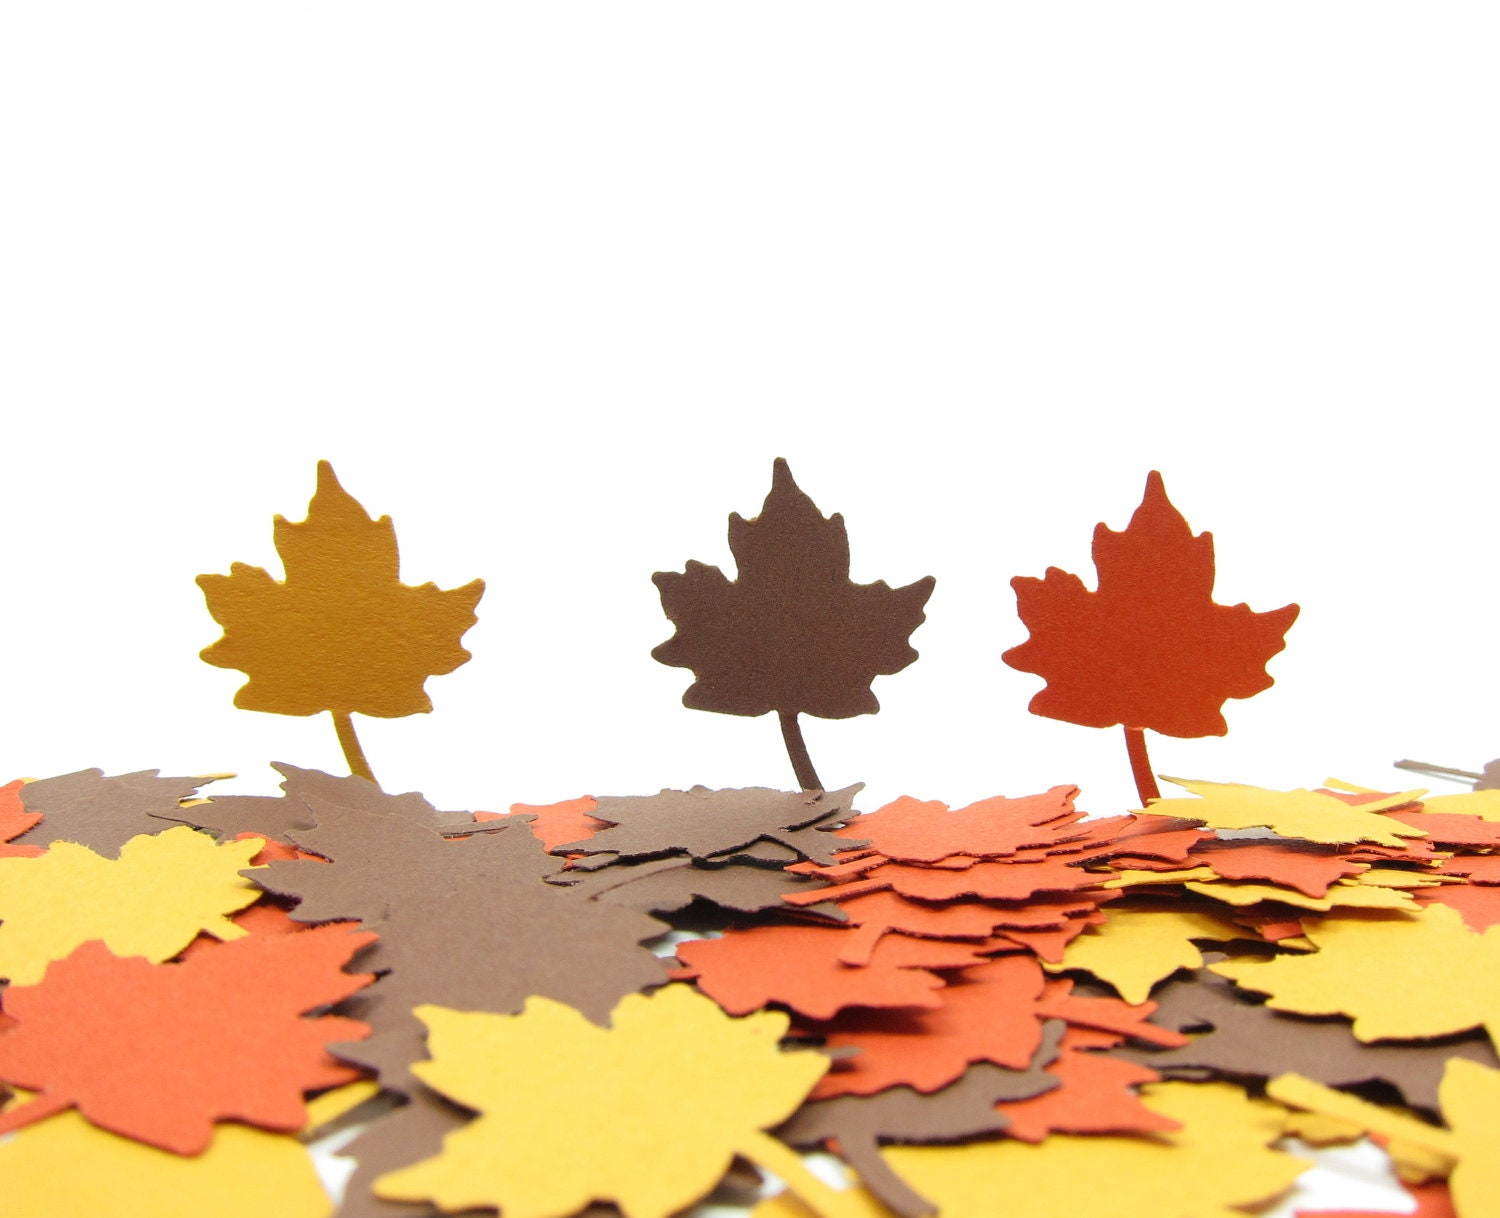 Autumn Leaves Confetti Large Maple Leaf Paper Punches in Orange Brown & Yellow - BrownEyedRose